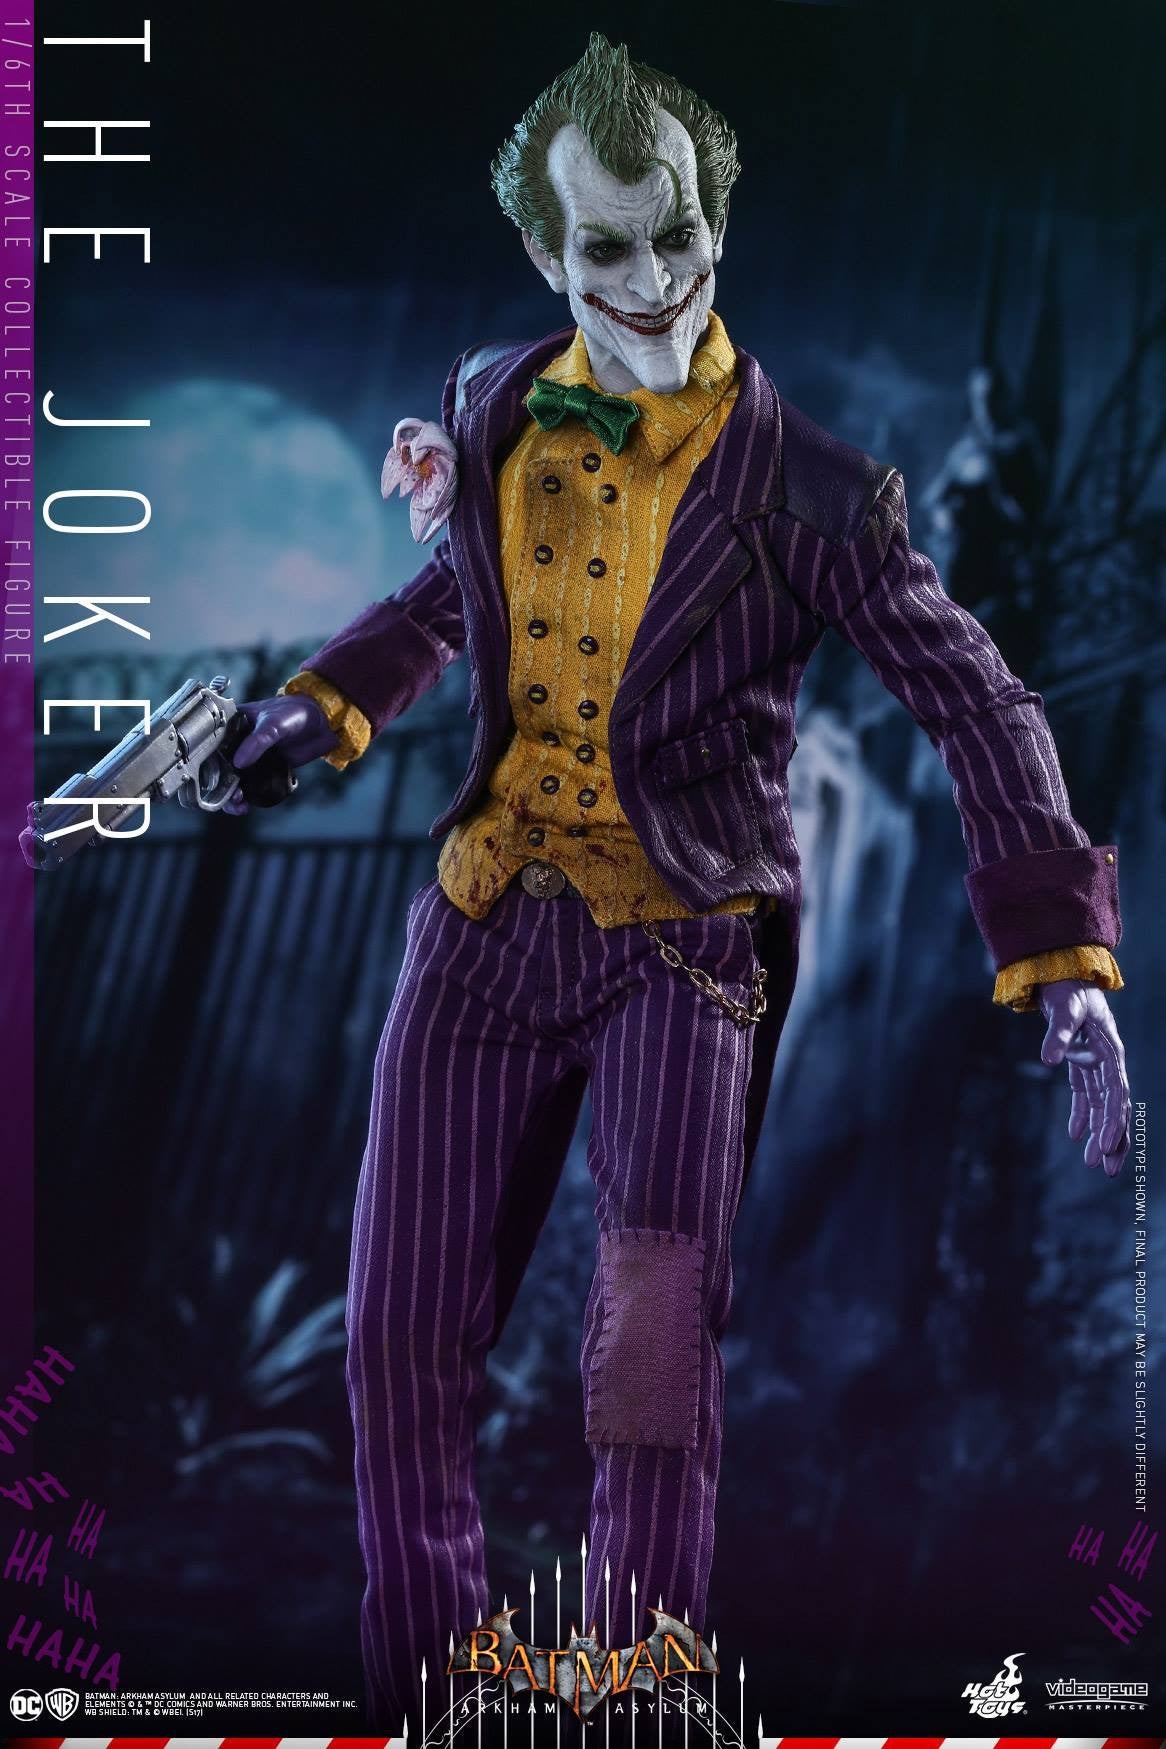 Hot Toys - VGM27 - Batman: Arkham Asylum - The Joker - Marvelous Toys - 11